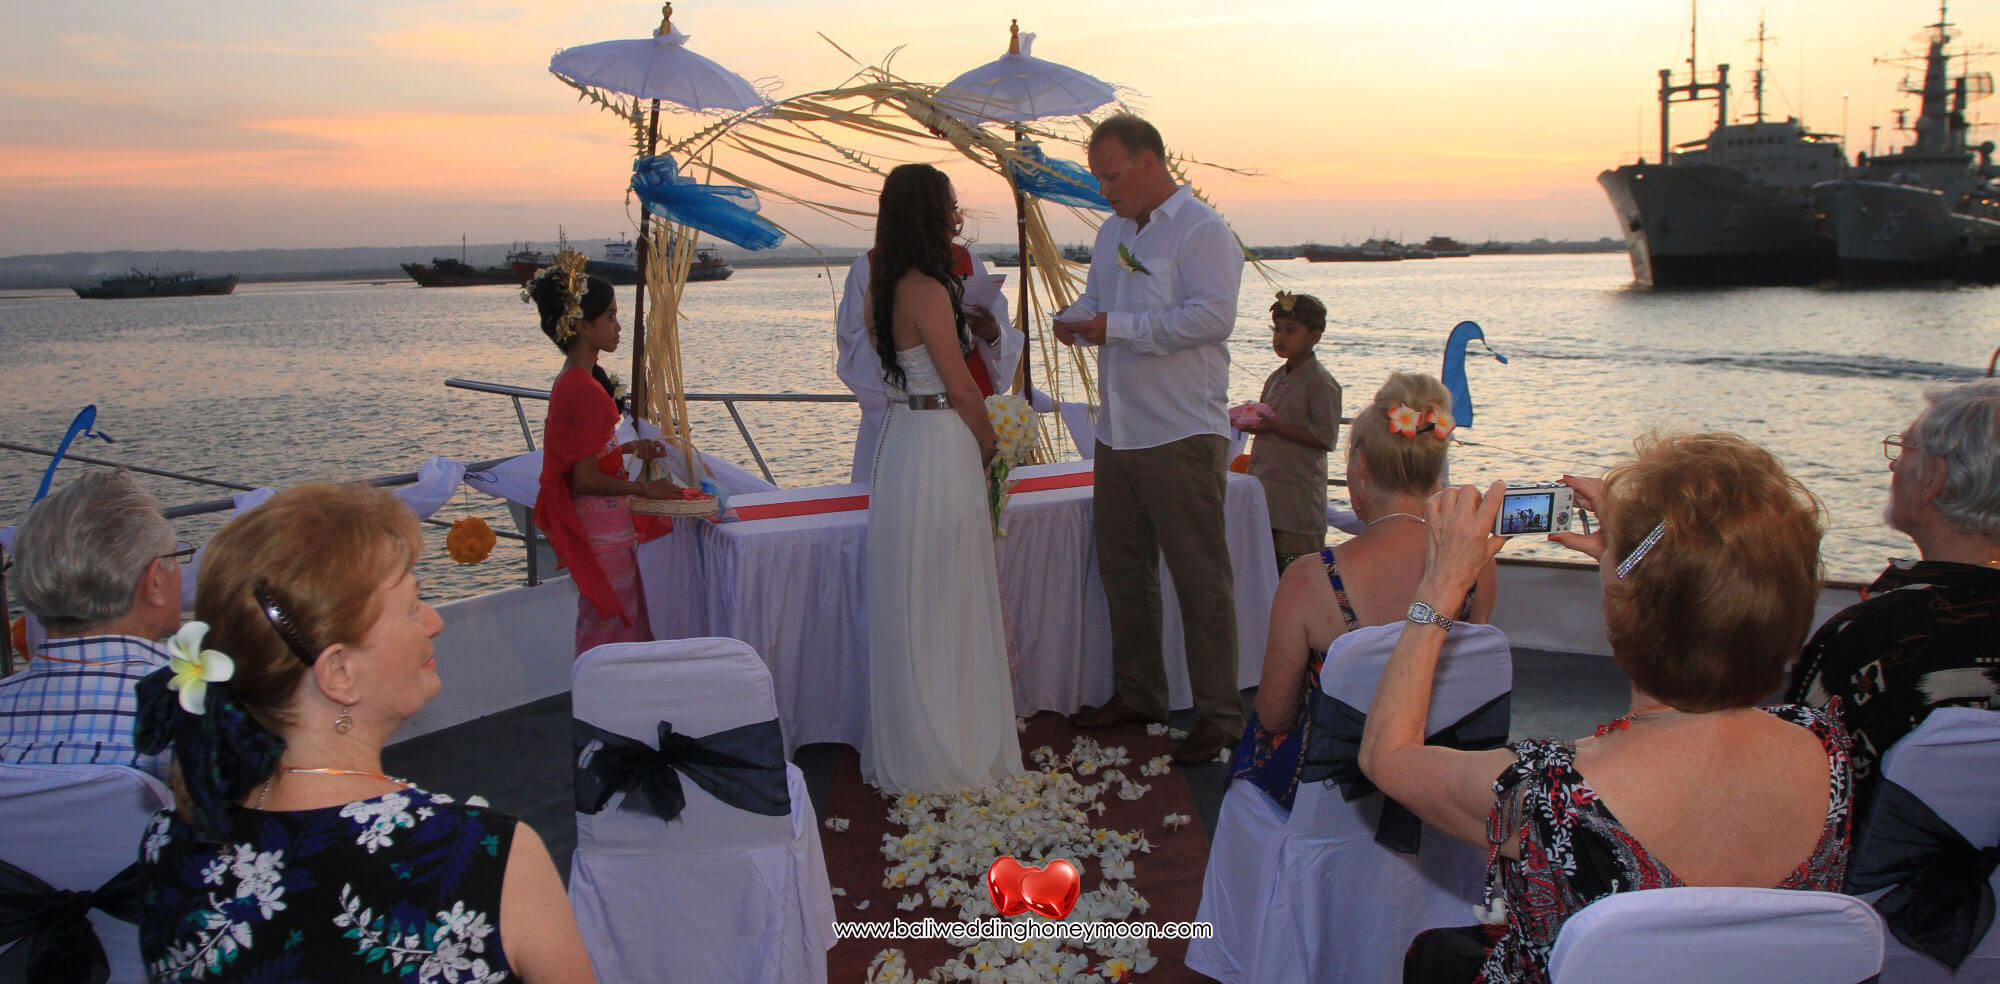 sailsensationcruisebali-weddingvenuebali-uniquebaliwedding-baliweddinghoneymoon-baliweddingorganizer-baliweddingplanner-baliweddingpackage3